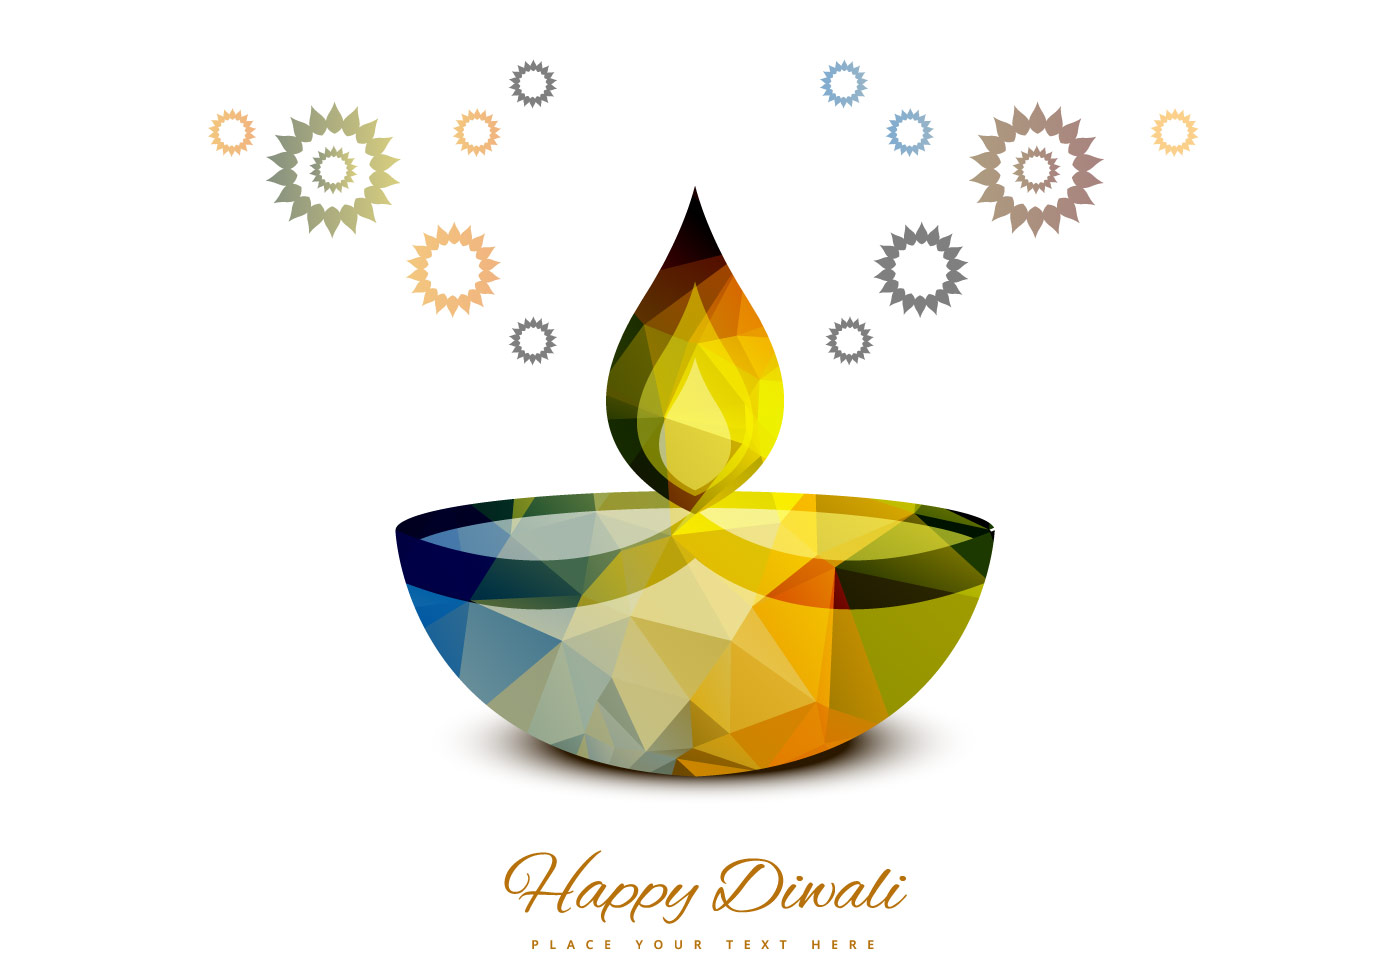 Colorful Diwali Lamp On White Background - Download Free Vector Art ... for Diwali Lamp Free Download  113cpg